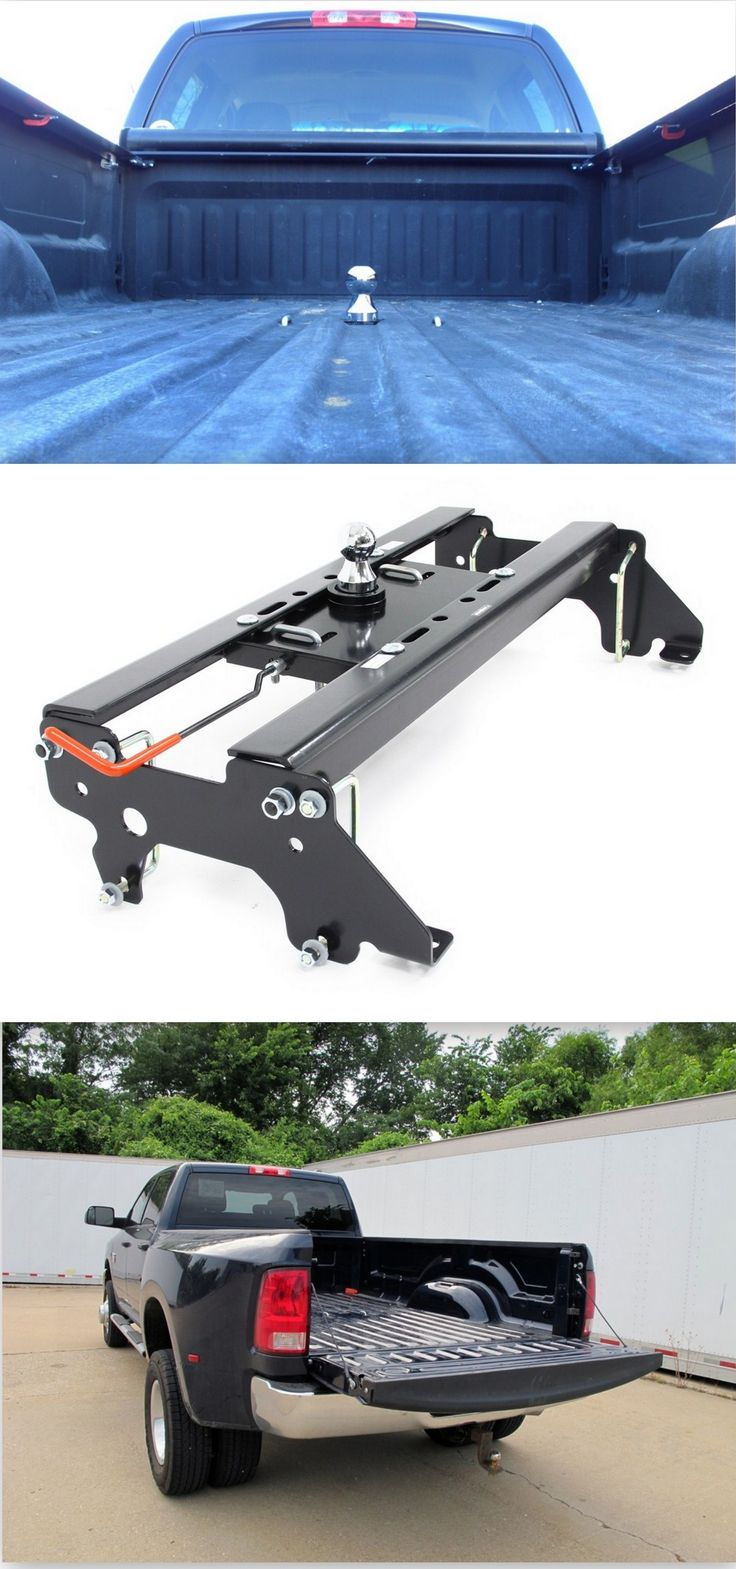 Hide a goose underbed gooseneck trailer hitch with custom installation kit 30 000 lbs trailer hitch installation gooseneck trailer hitch and hitch